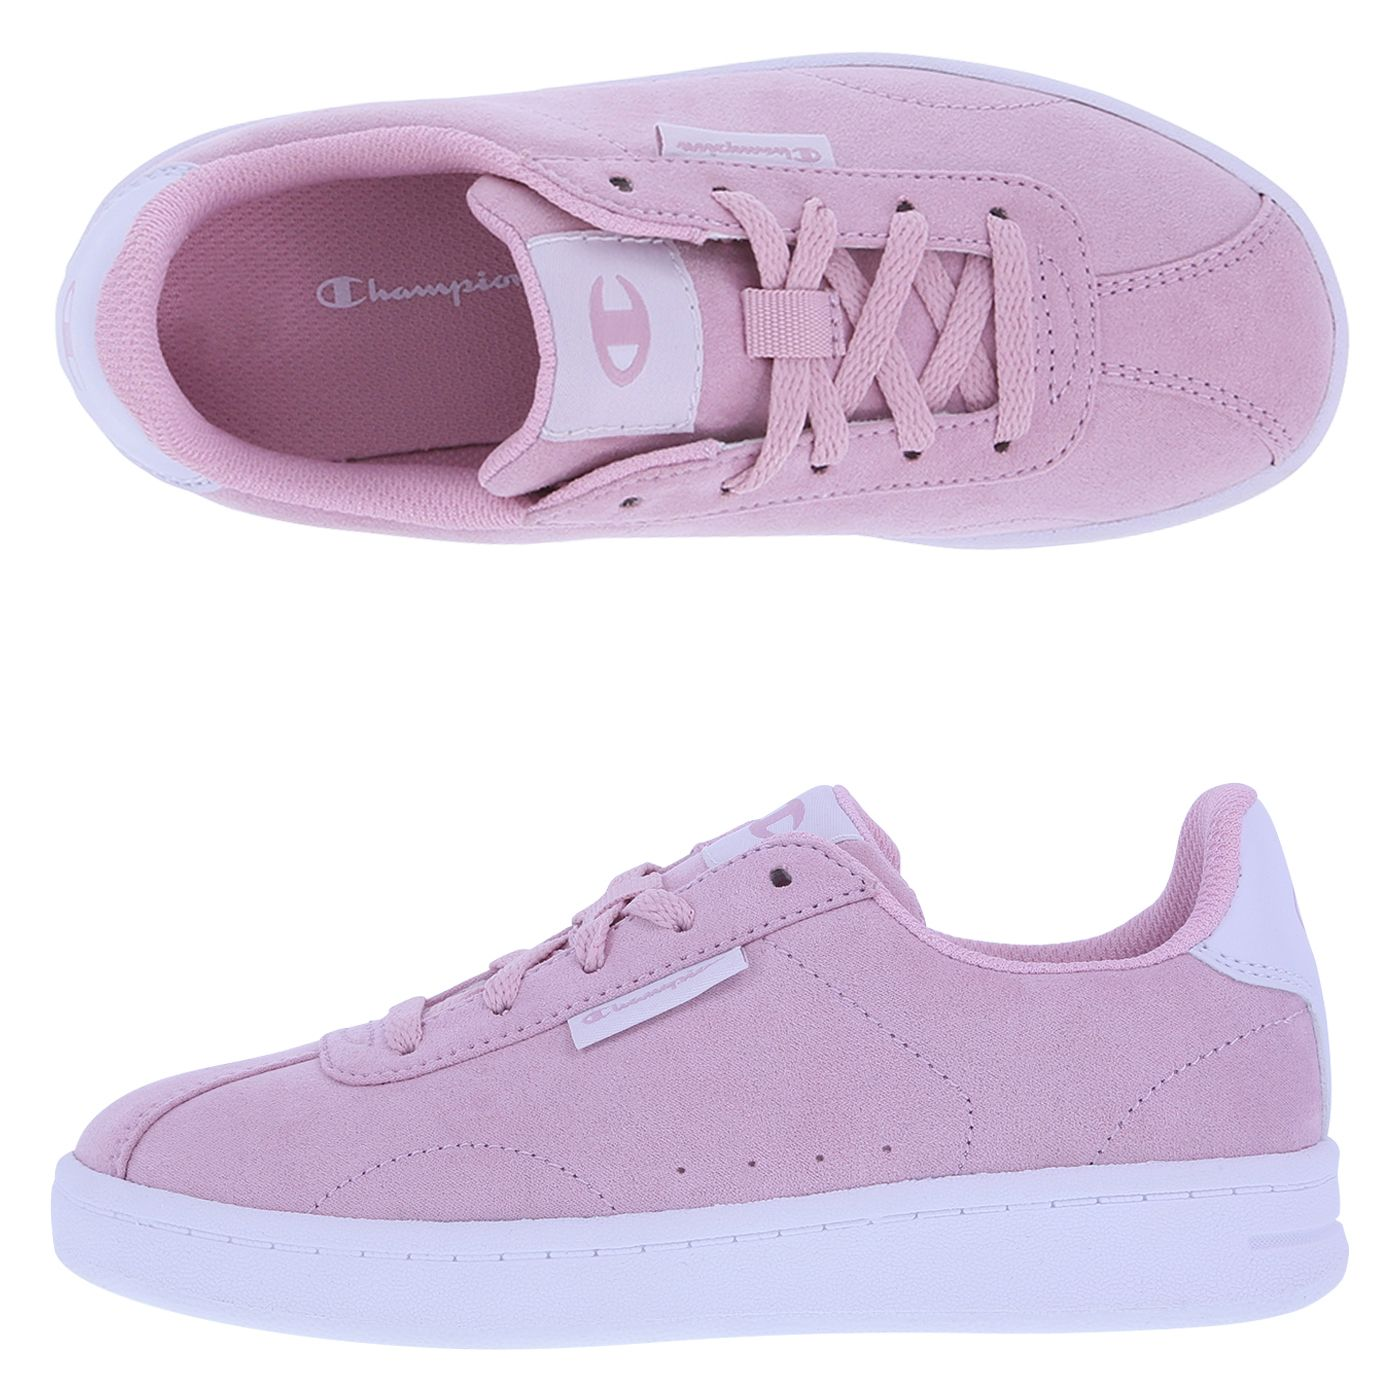 3f7f636097c Old Rose Rally Court Shoes from Champion